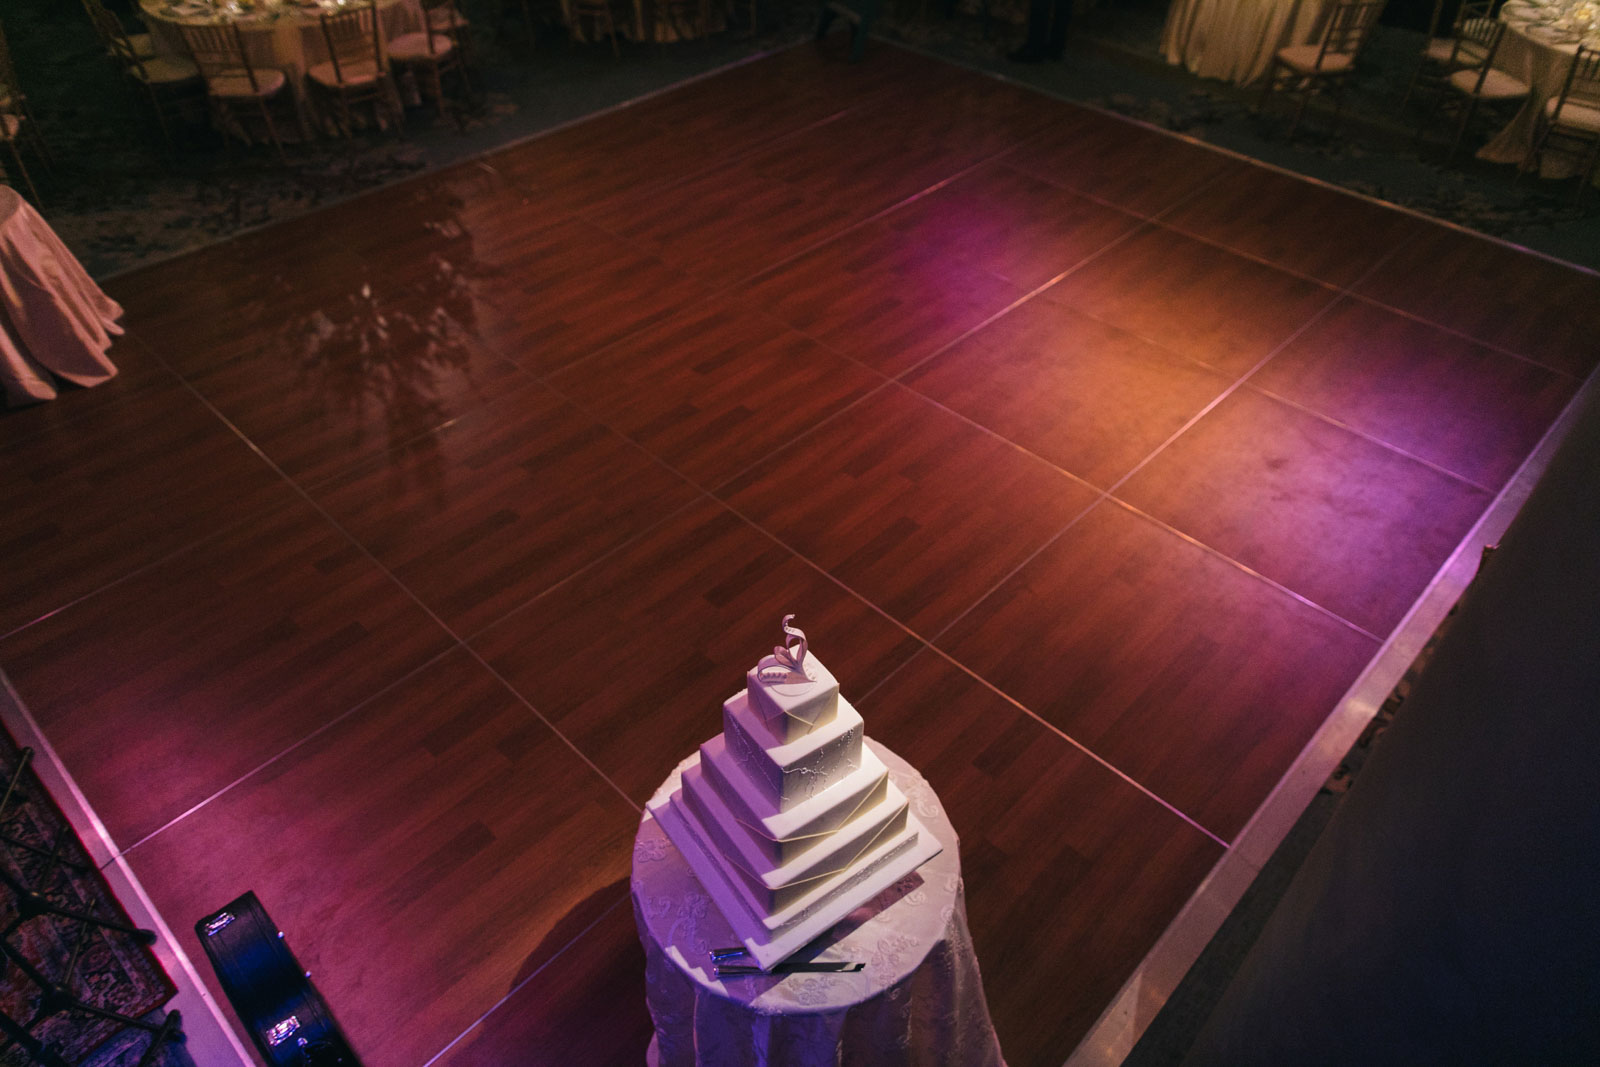 Shot of the dance floor from above with romantic lighting and square multi-tiered wedding cake